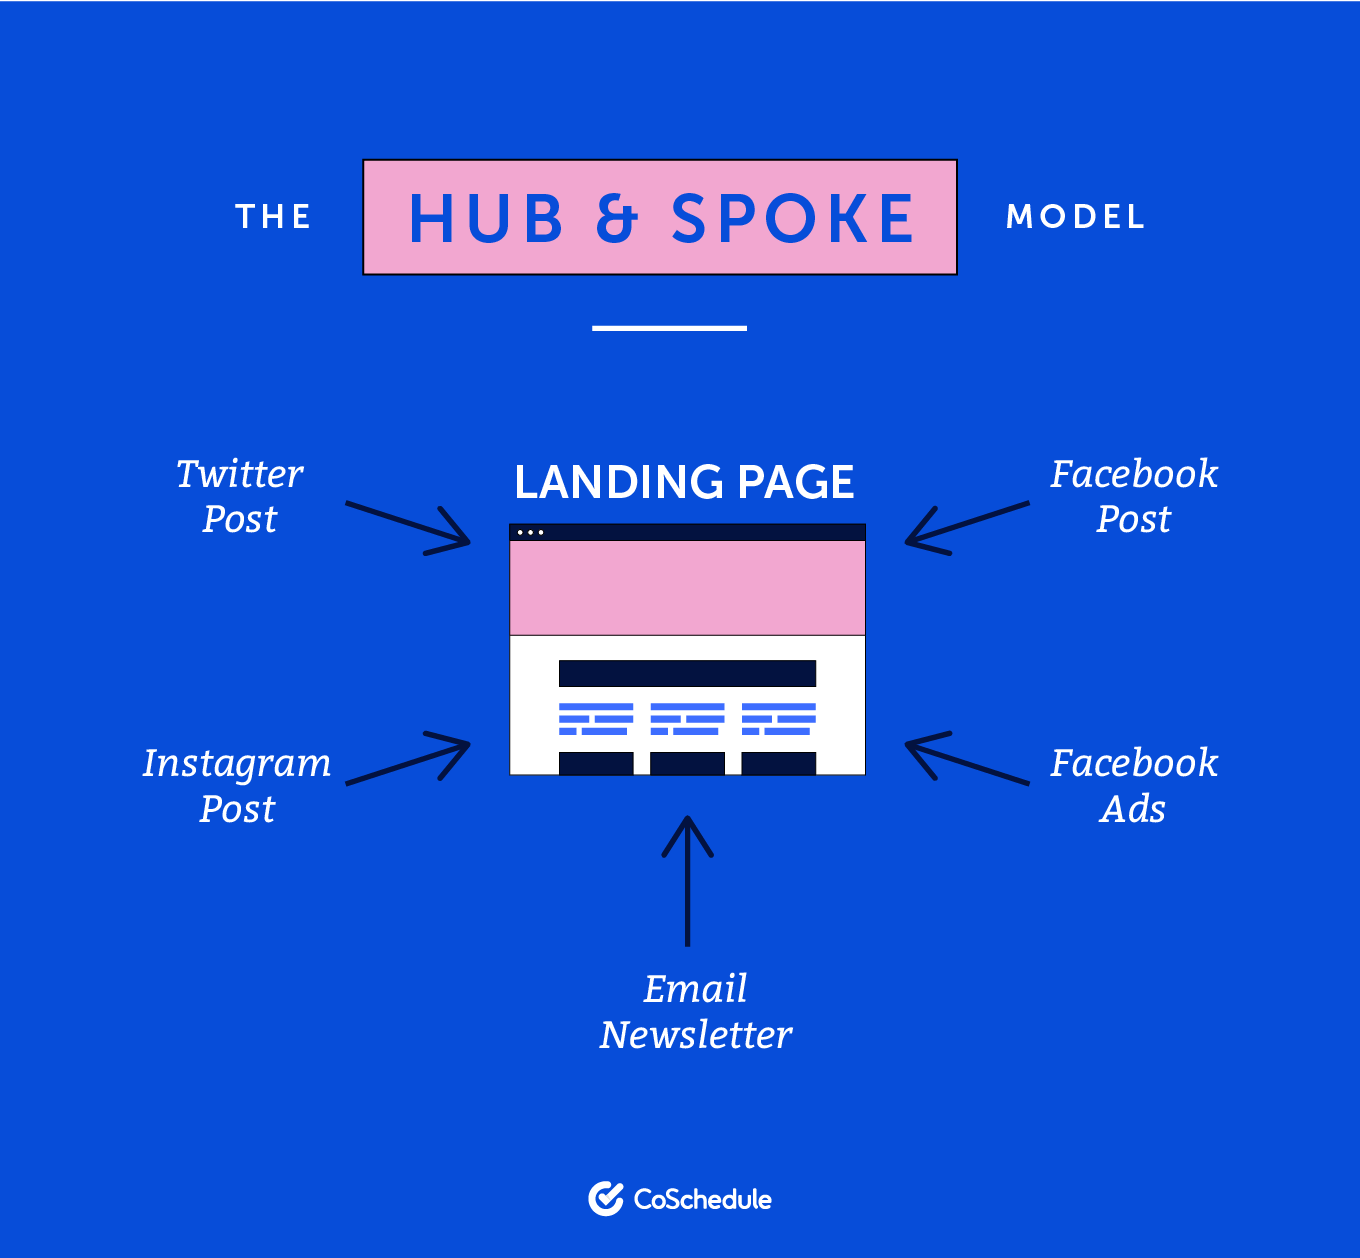 The hub and spoke model